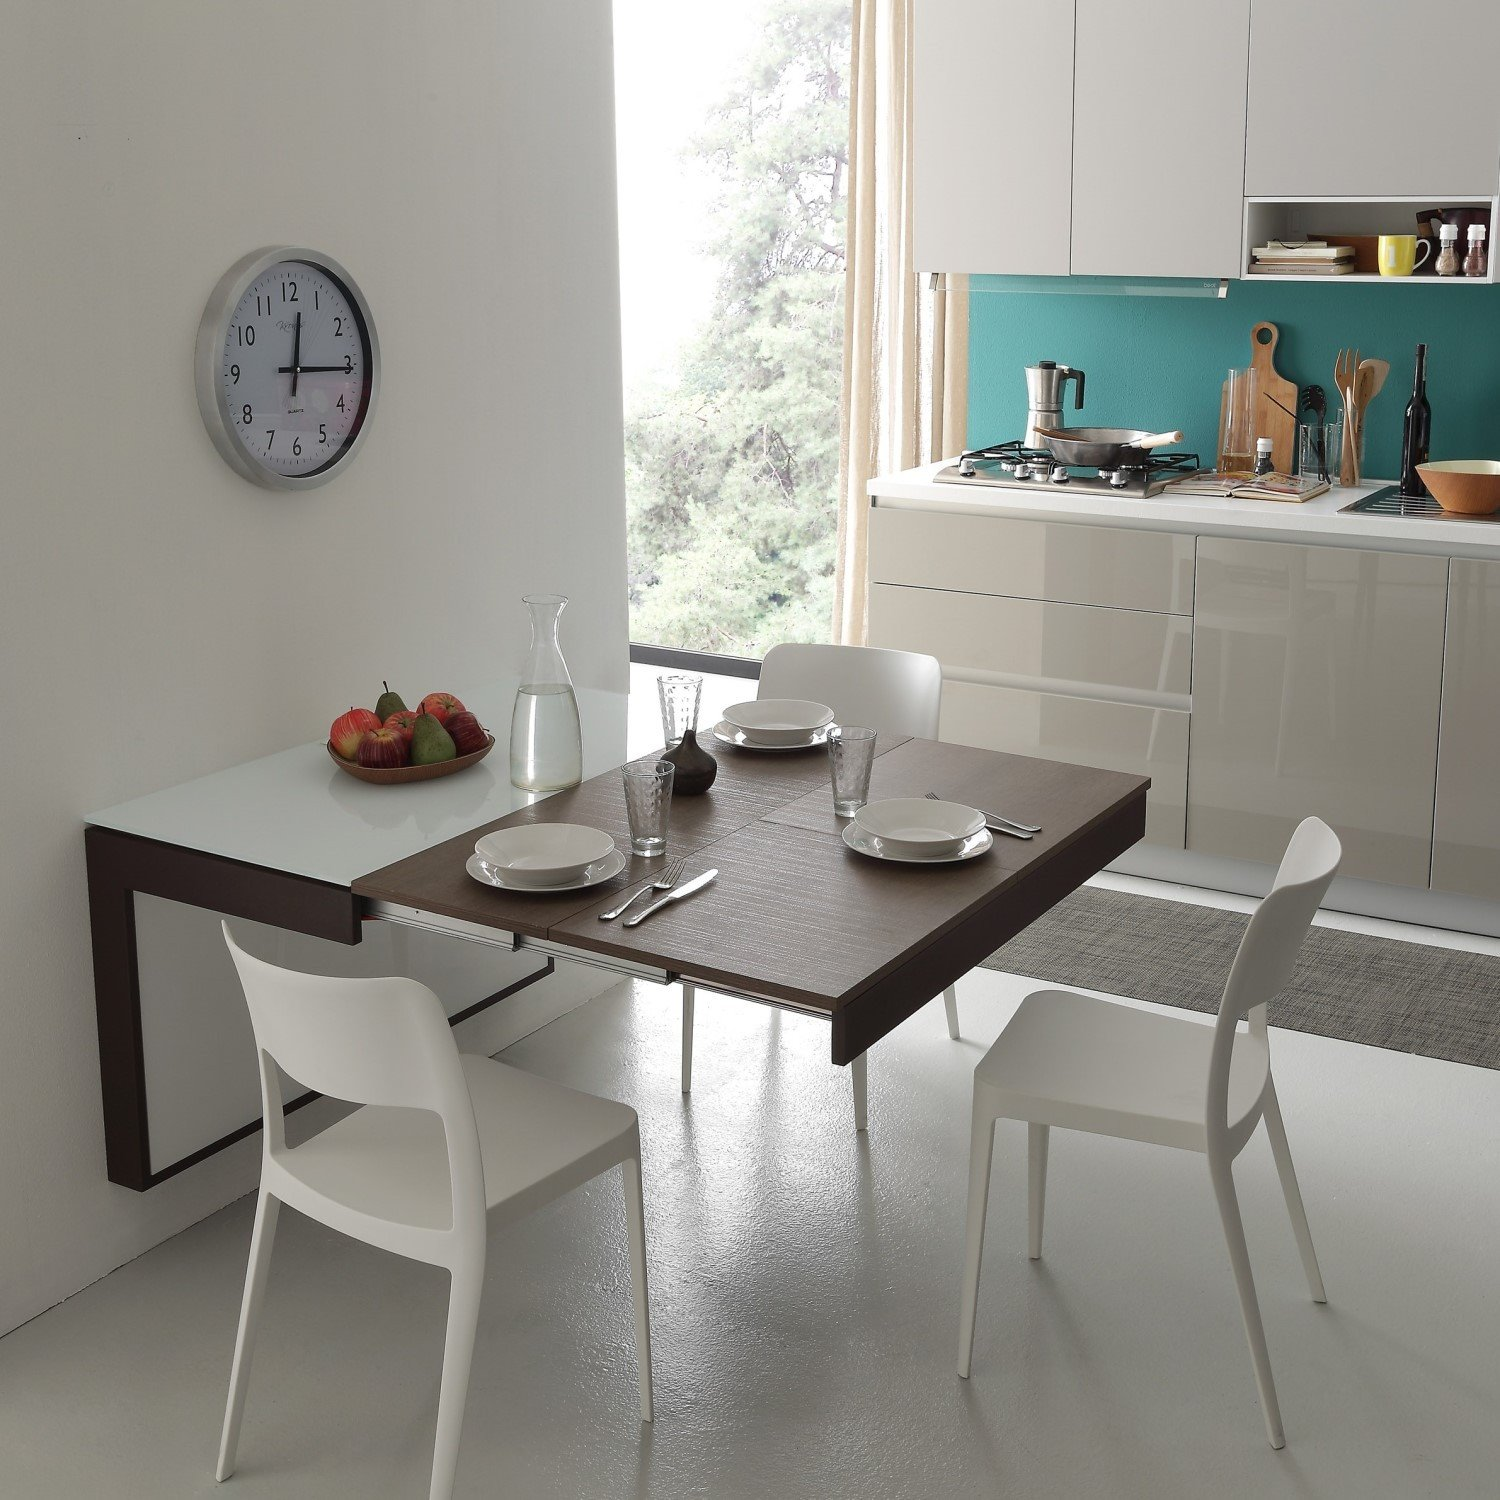 Arredaclick blog come arredare un monolocale idee for Salotto casa moderna